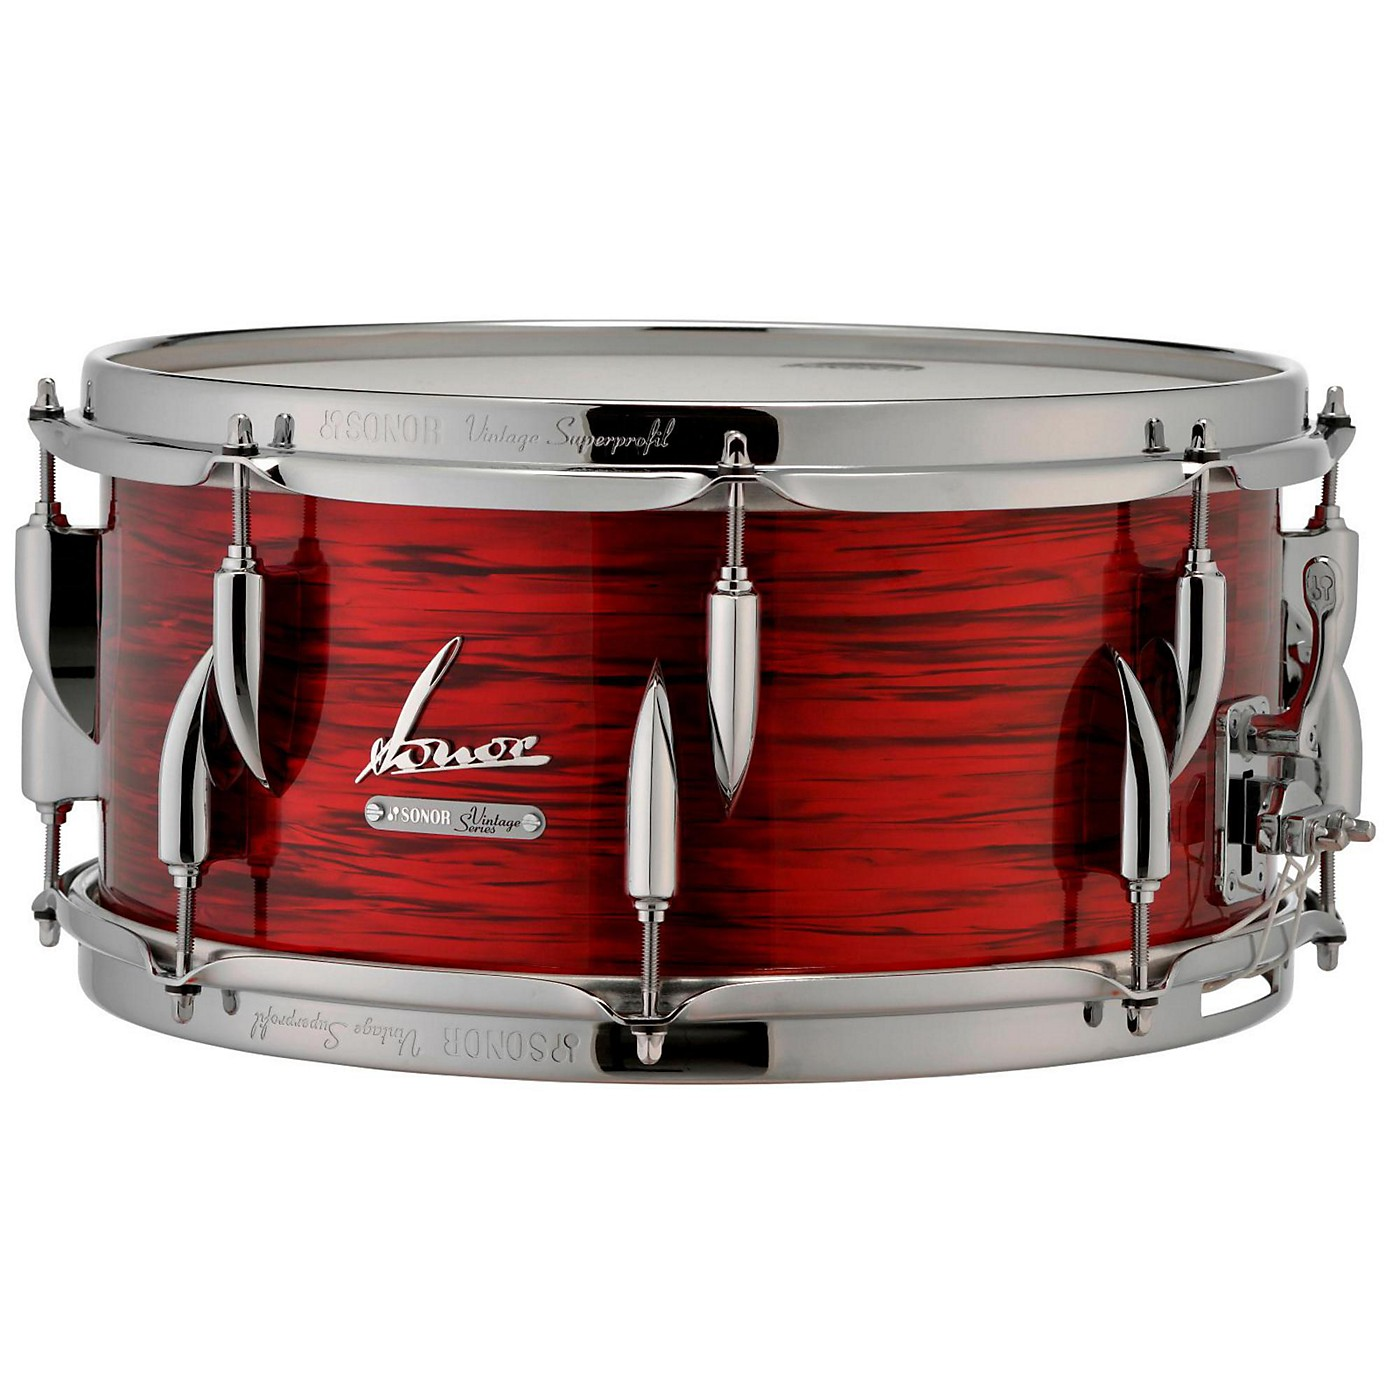 SONOR Vintage Series Snare Drum thumbnail